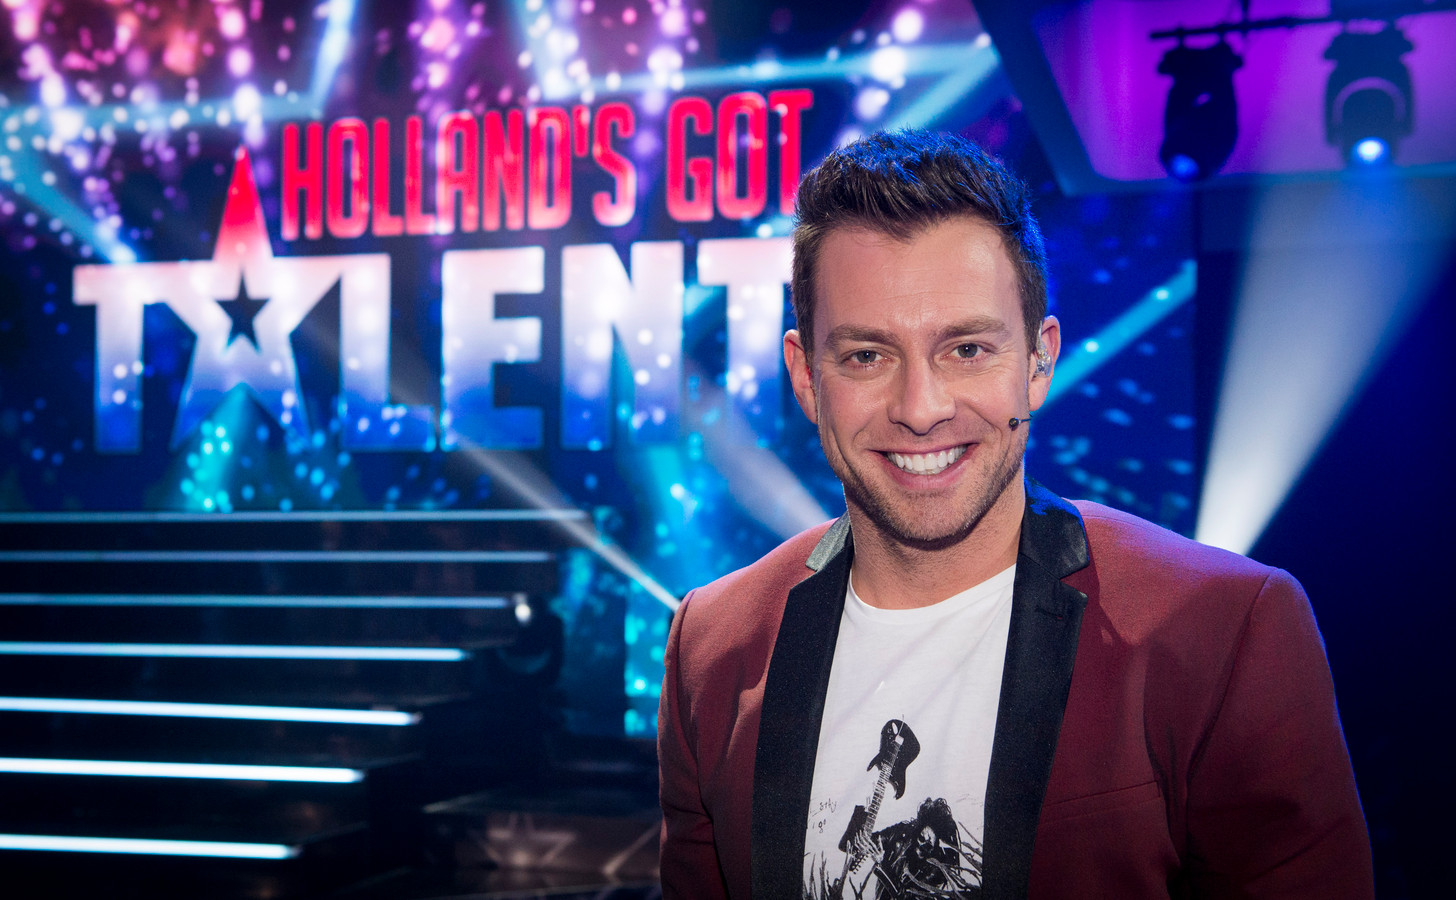 Foto ter illustratie: Dan Karaty danschoreograaf en jurylid van Holland's Got Talent.